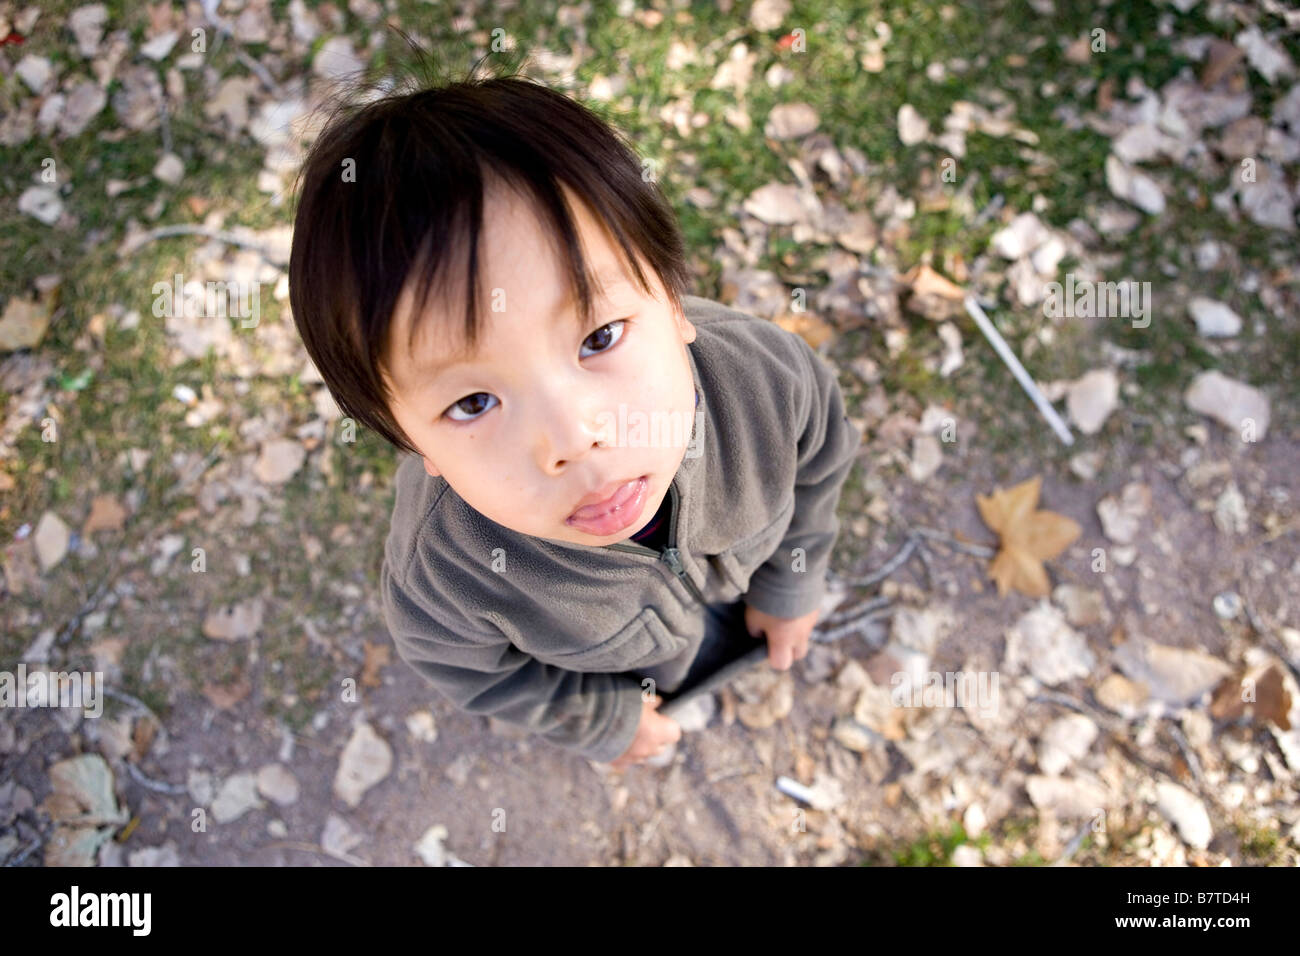 High angle portrait of grumpy two year old Japanese boy - Stock Image